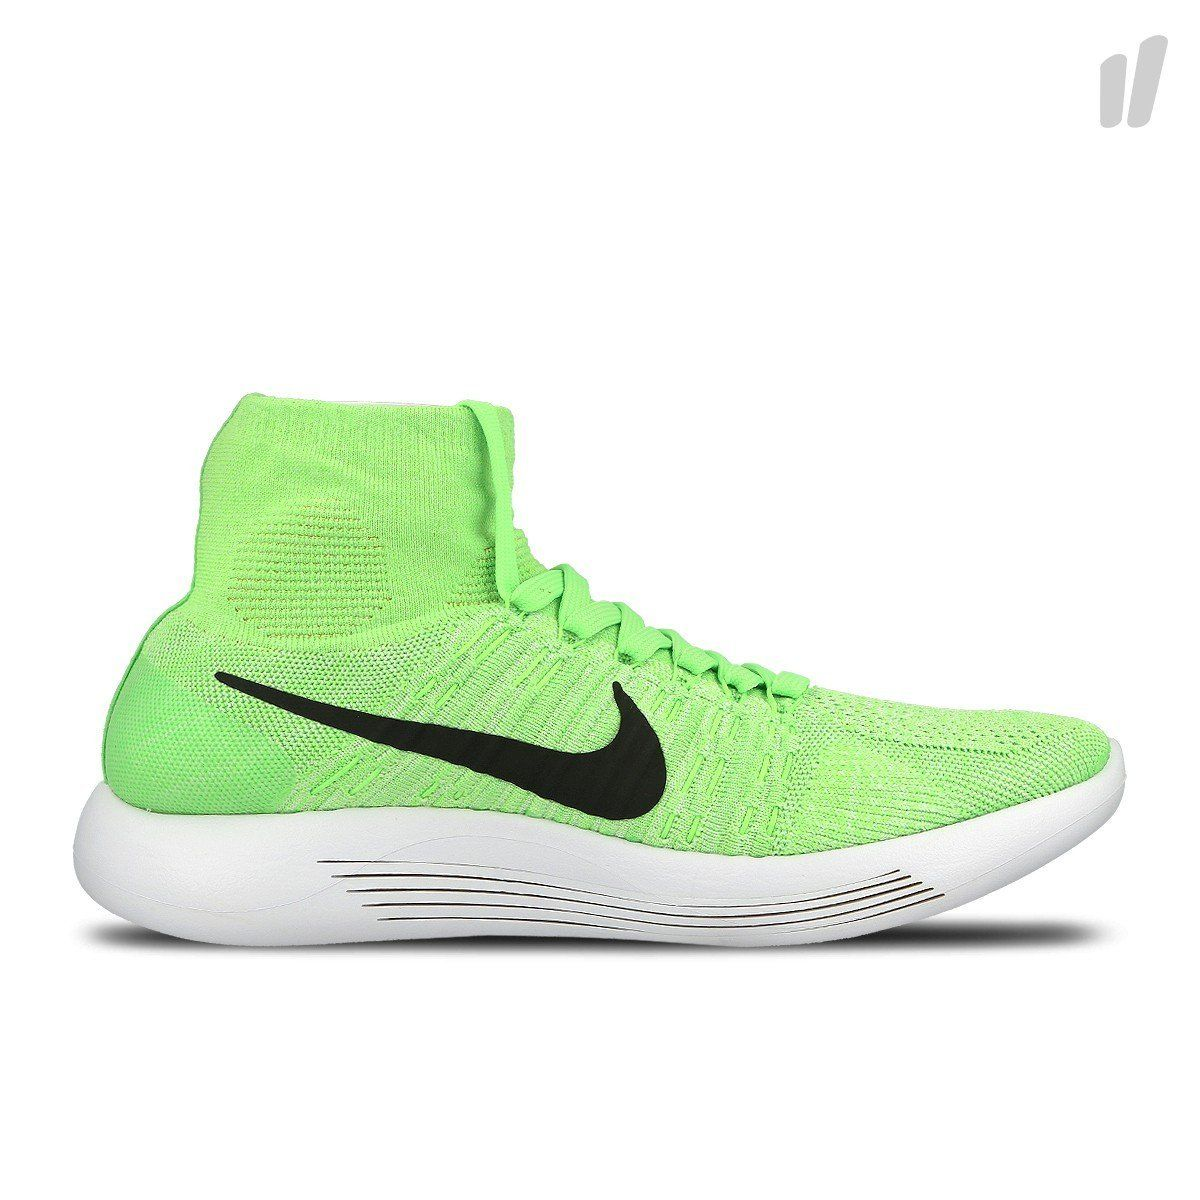 Nike LunarEpic Flyknit amazon